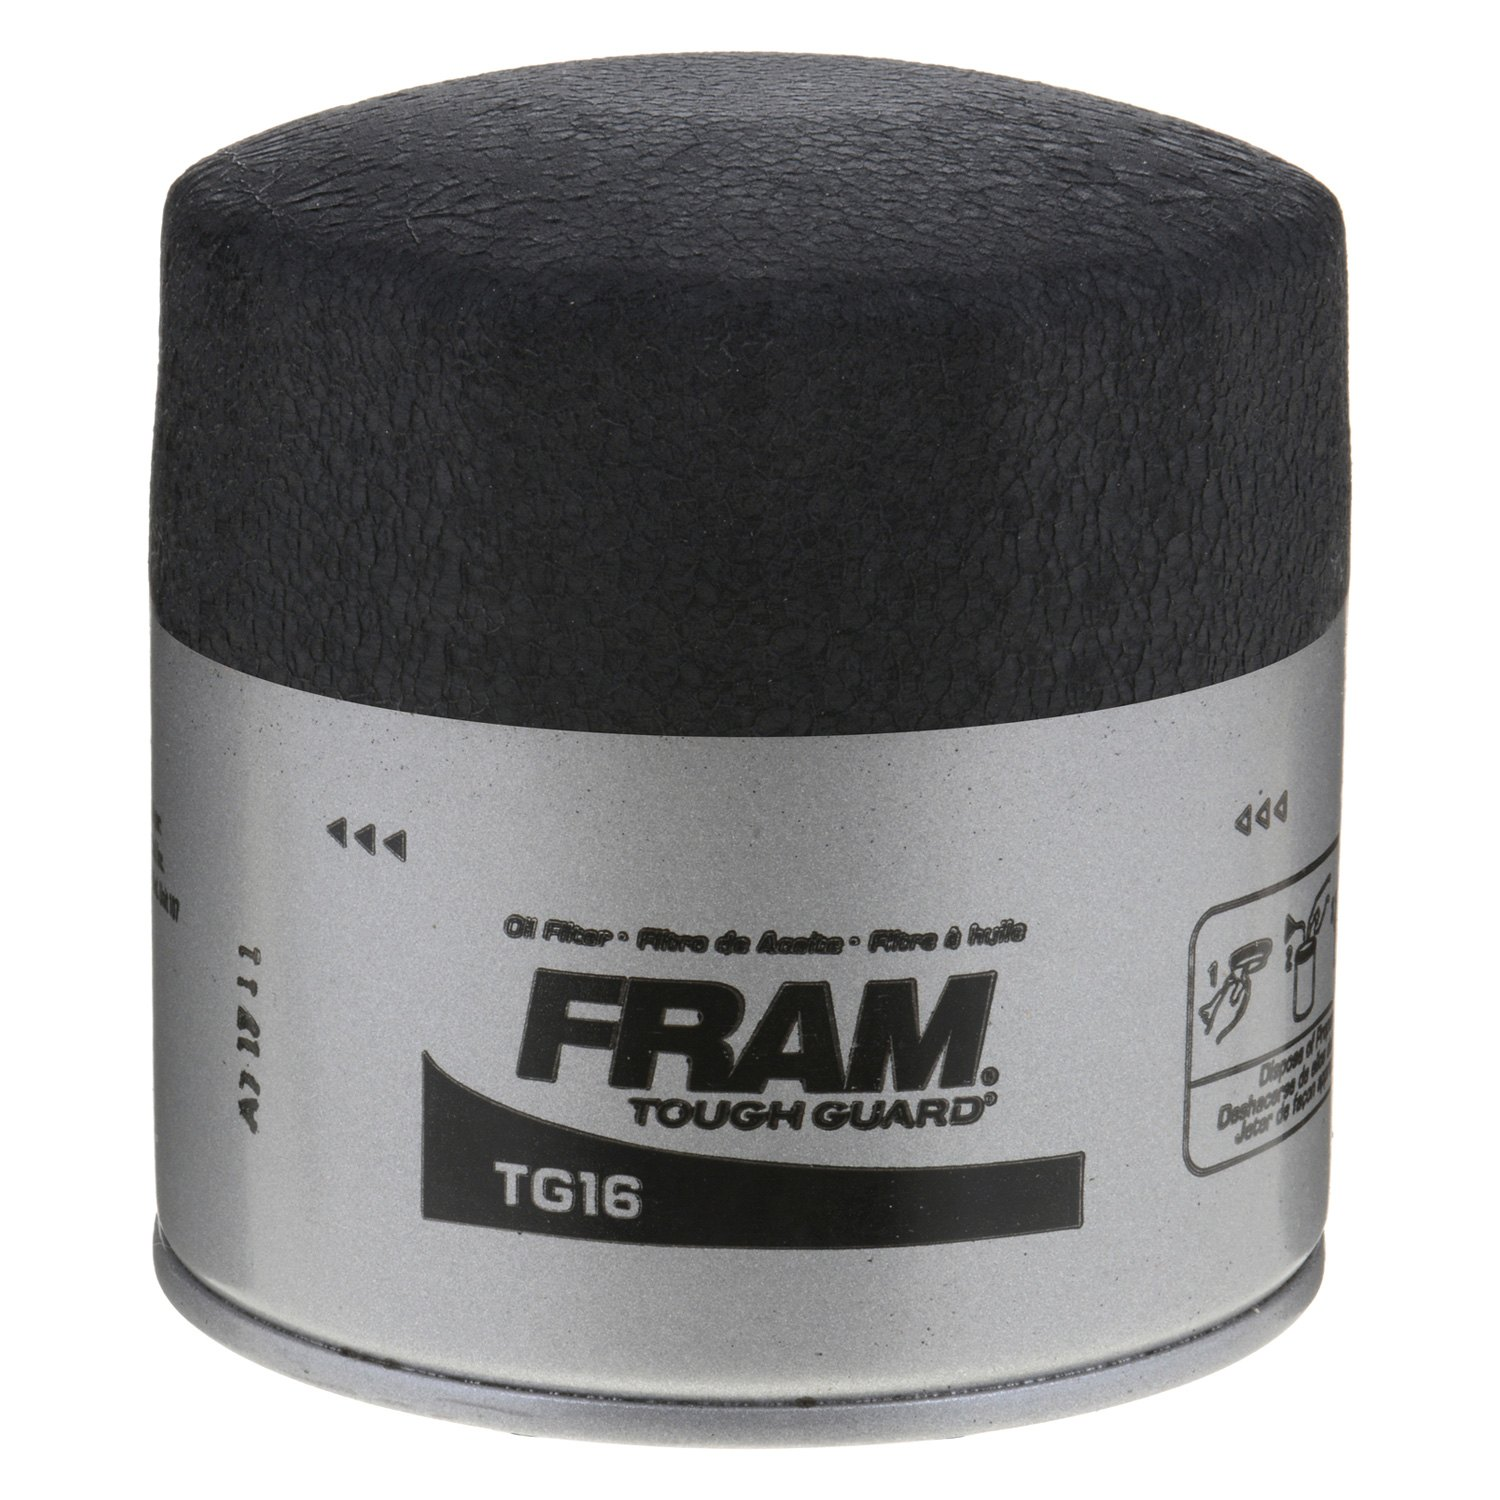 Fram Tg16 Tough Guard Oil Filter 1999 Jeep Wrangler Fuel Location